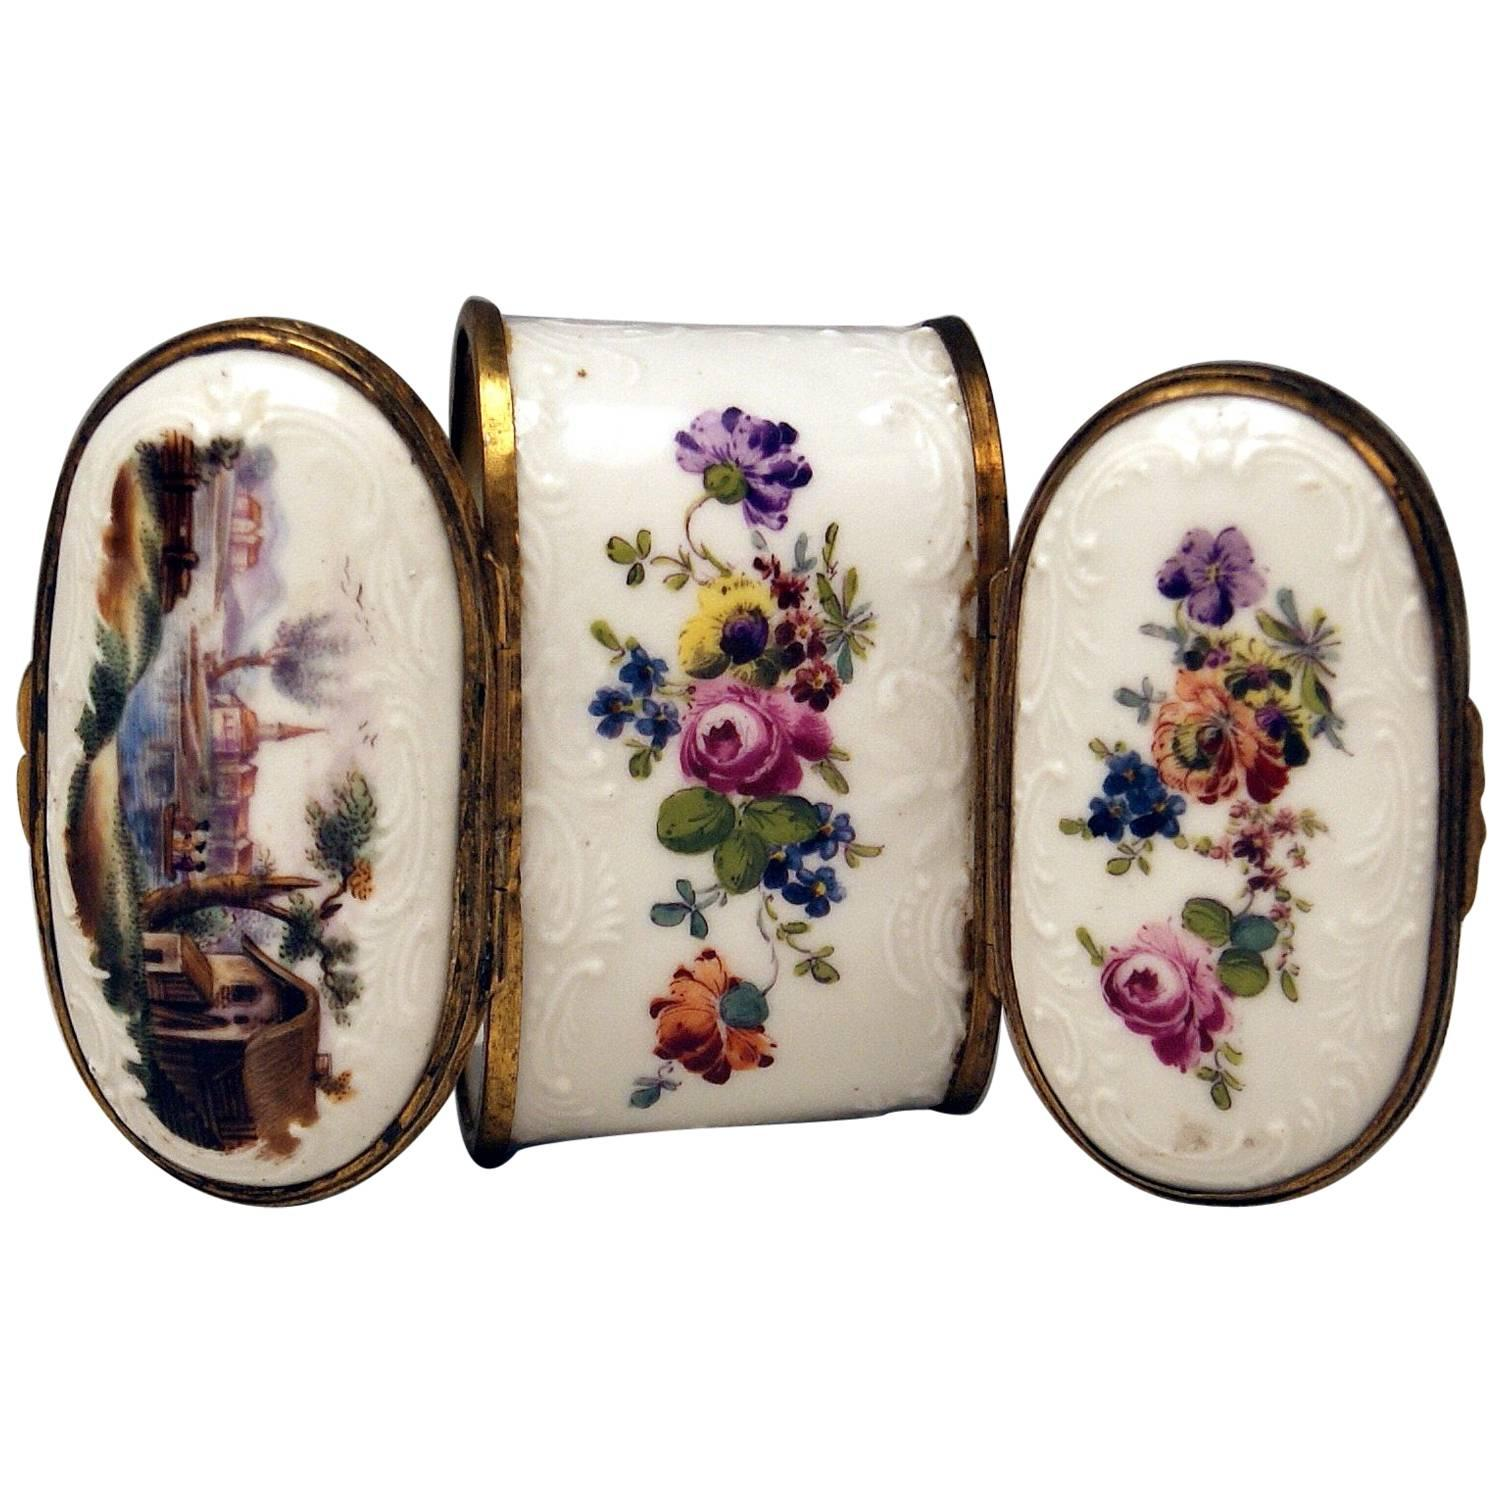 Meissen Painted Dual Lidded Rococo Box Relief Decoration Brass Mountings, 1750